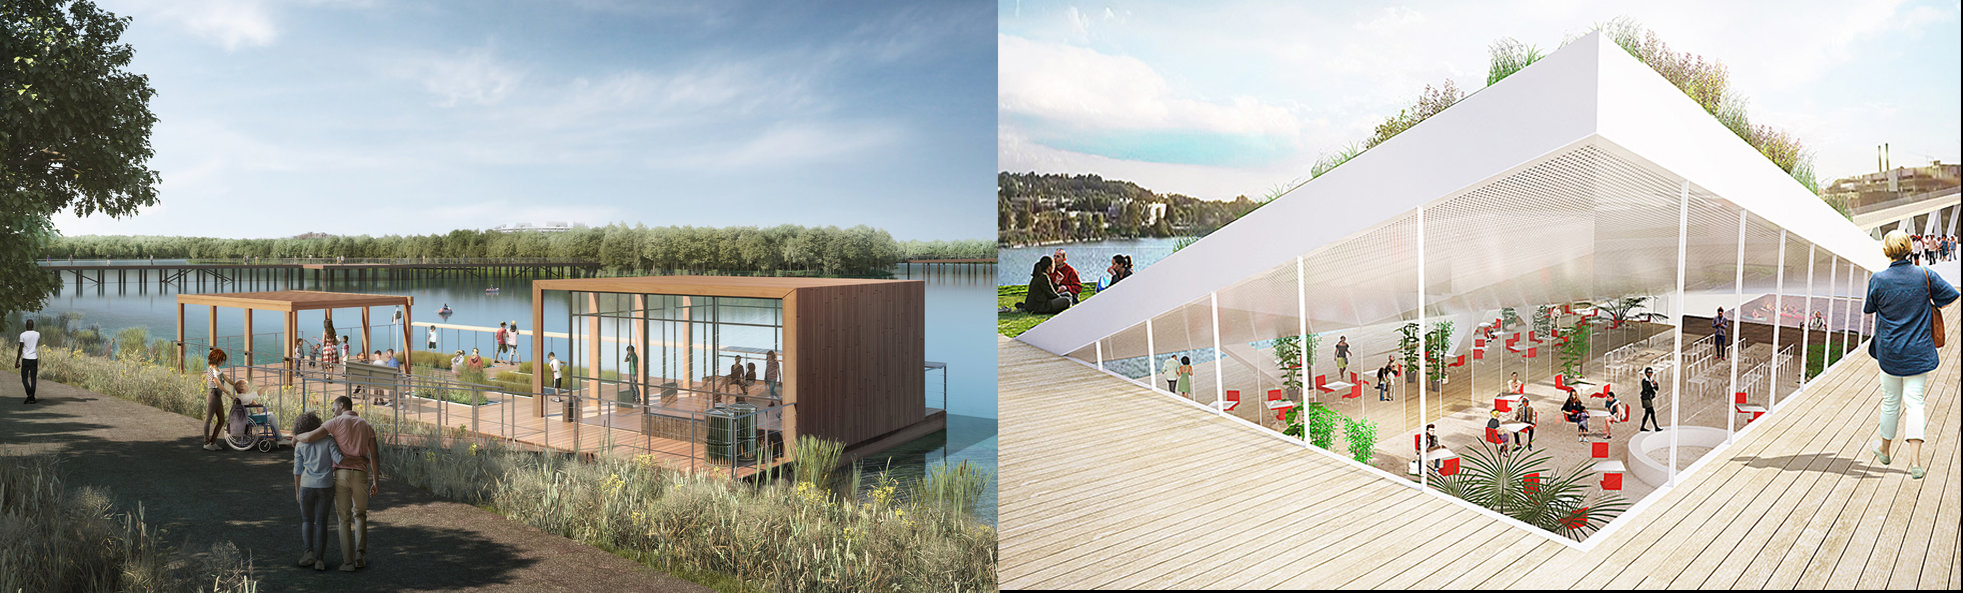 Both the 11th Street Bridge Park and the Kingman Island plans include an environmental education center (right and left, respectively). There is already an existing center in Anacostia Park. How will they be different? How will they relate to each other?